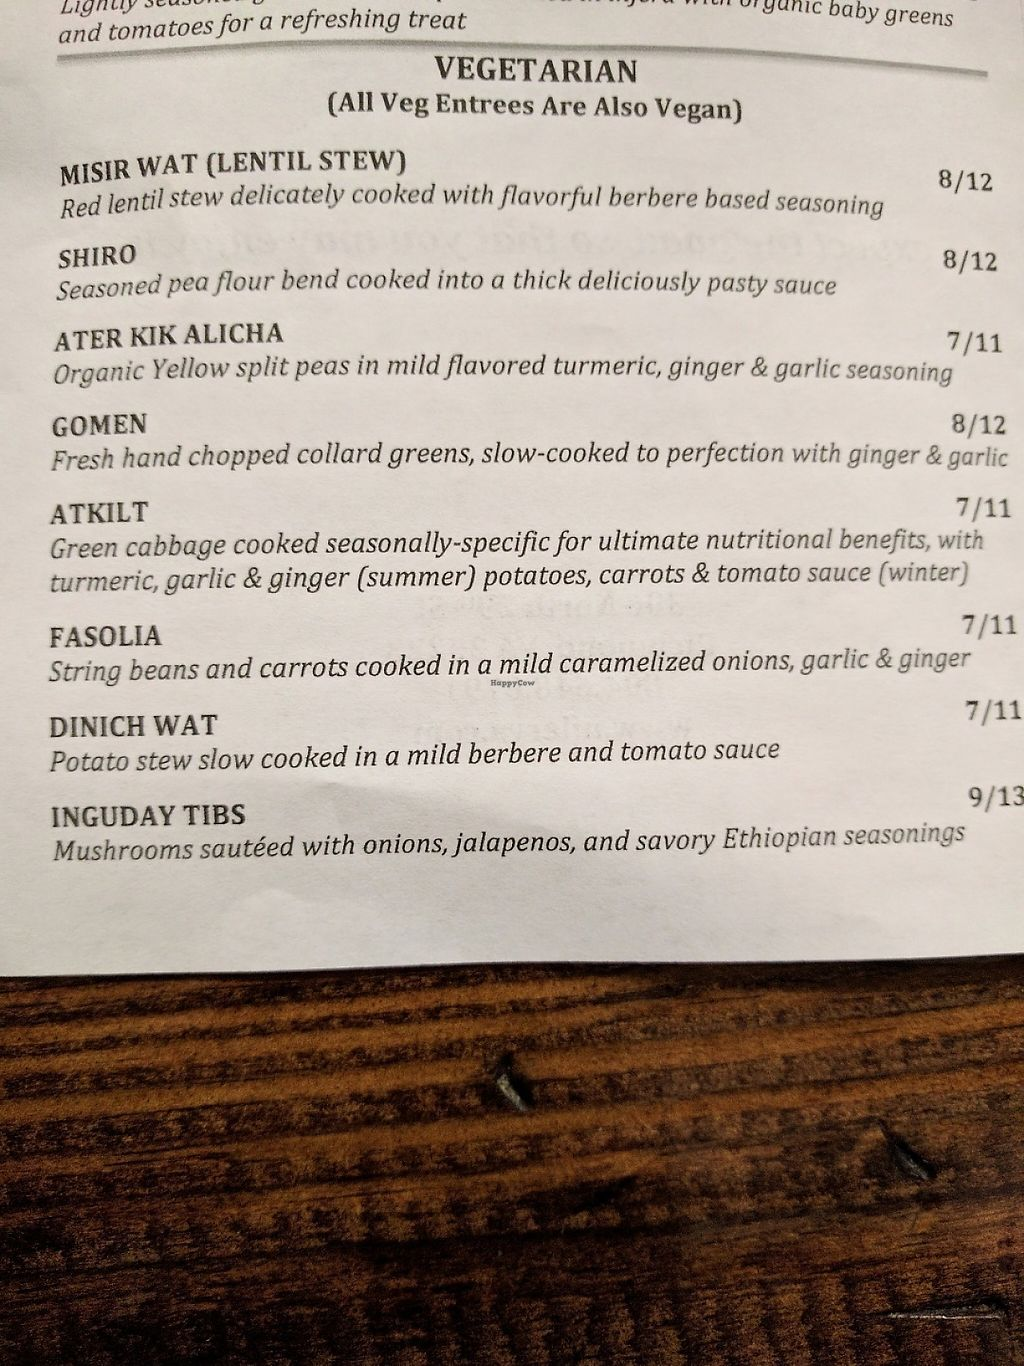 "Photo of Nile Ethiopian Restaurant  by <a href=""/members/profile/JohnGardner"">JohnGardner</a> <br/>Veg portion of the menu <br/> May 5, 2017  - <a href='/contact/abuse/image/5297/255916'>Report</a>"